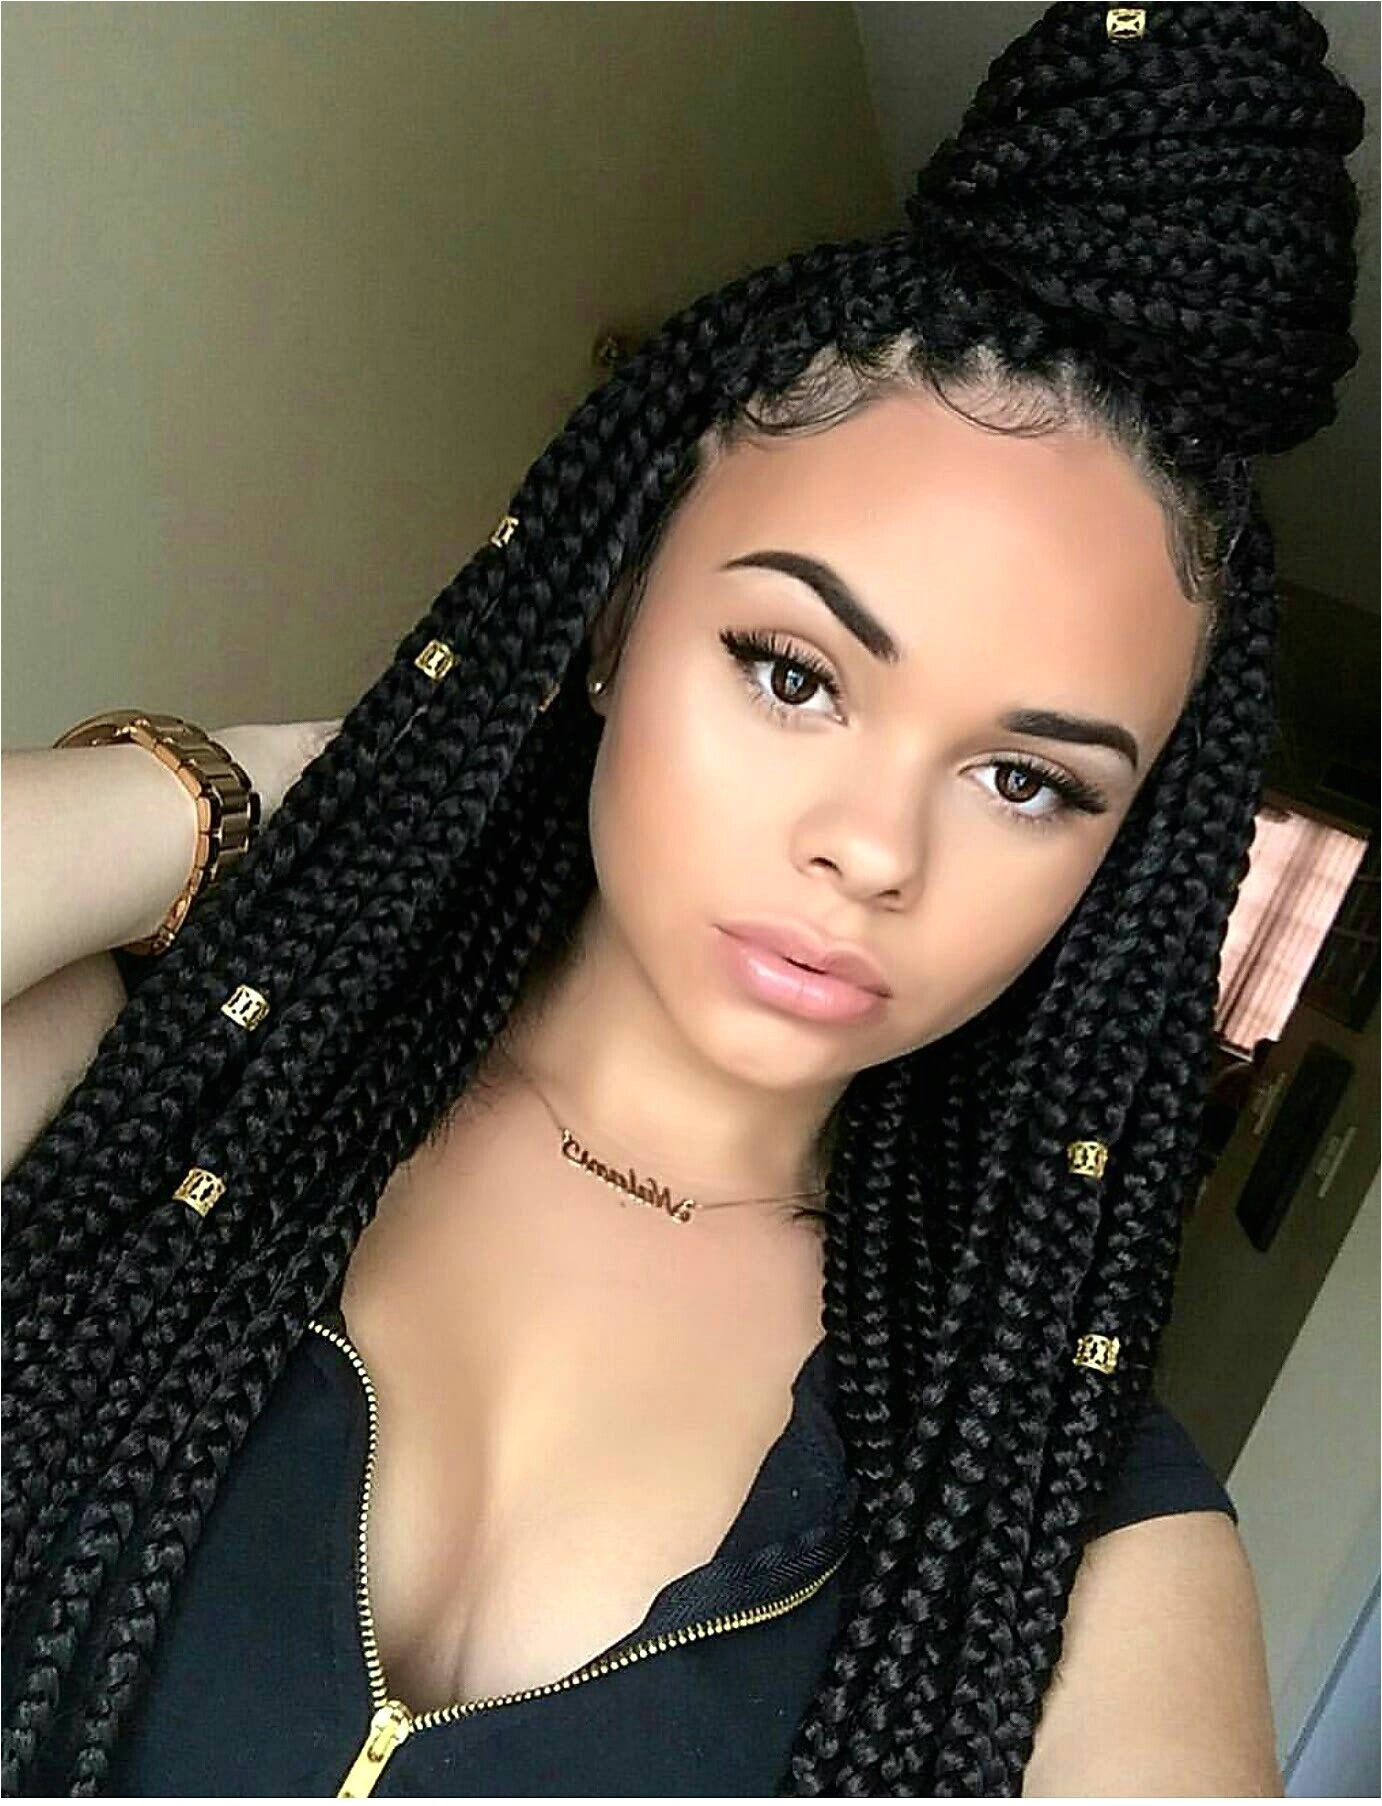 This Crochet Box Braid Tutorial will provide you with an awesome protective style in less time than it takes to install regular box braids